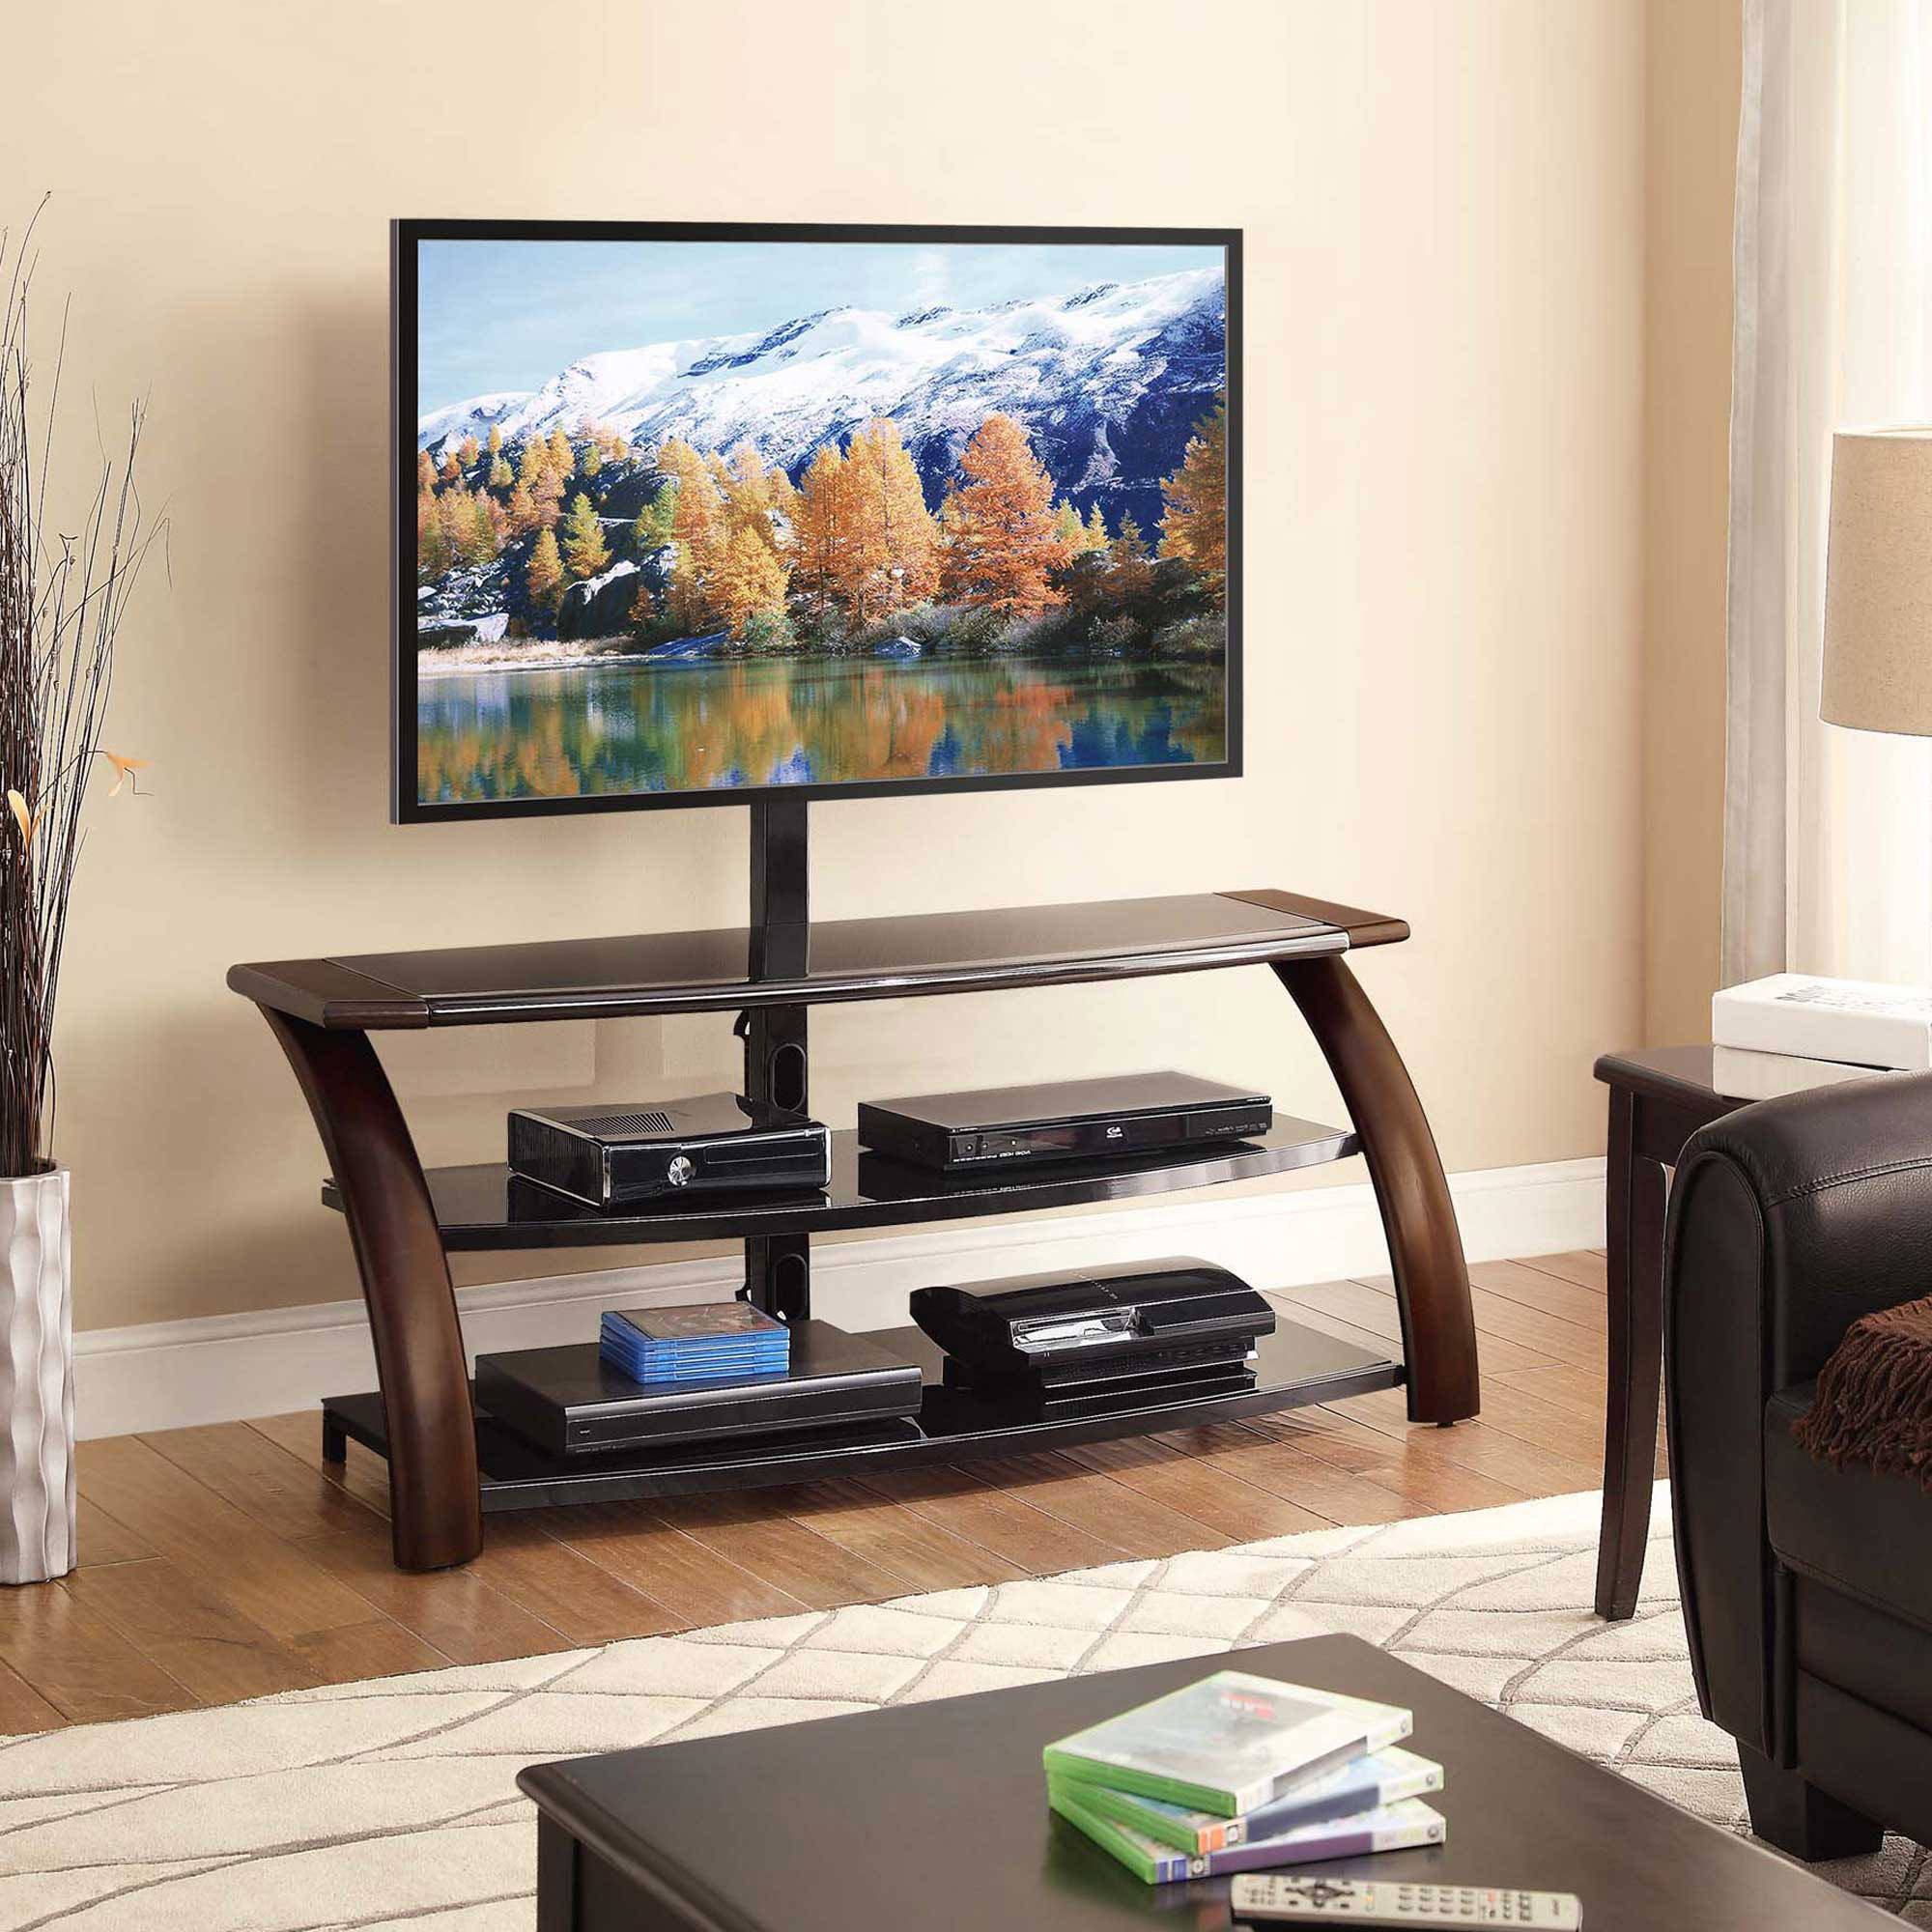 Whalen Payton 3 In 1 Flat Panel Tv Stand For Tvs Up To 65 For Tv Stands With Led Lights In Multiple Finishes (View 1 of 20)